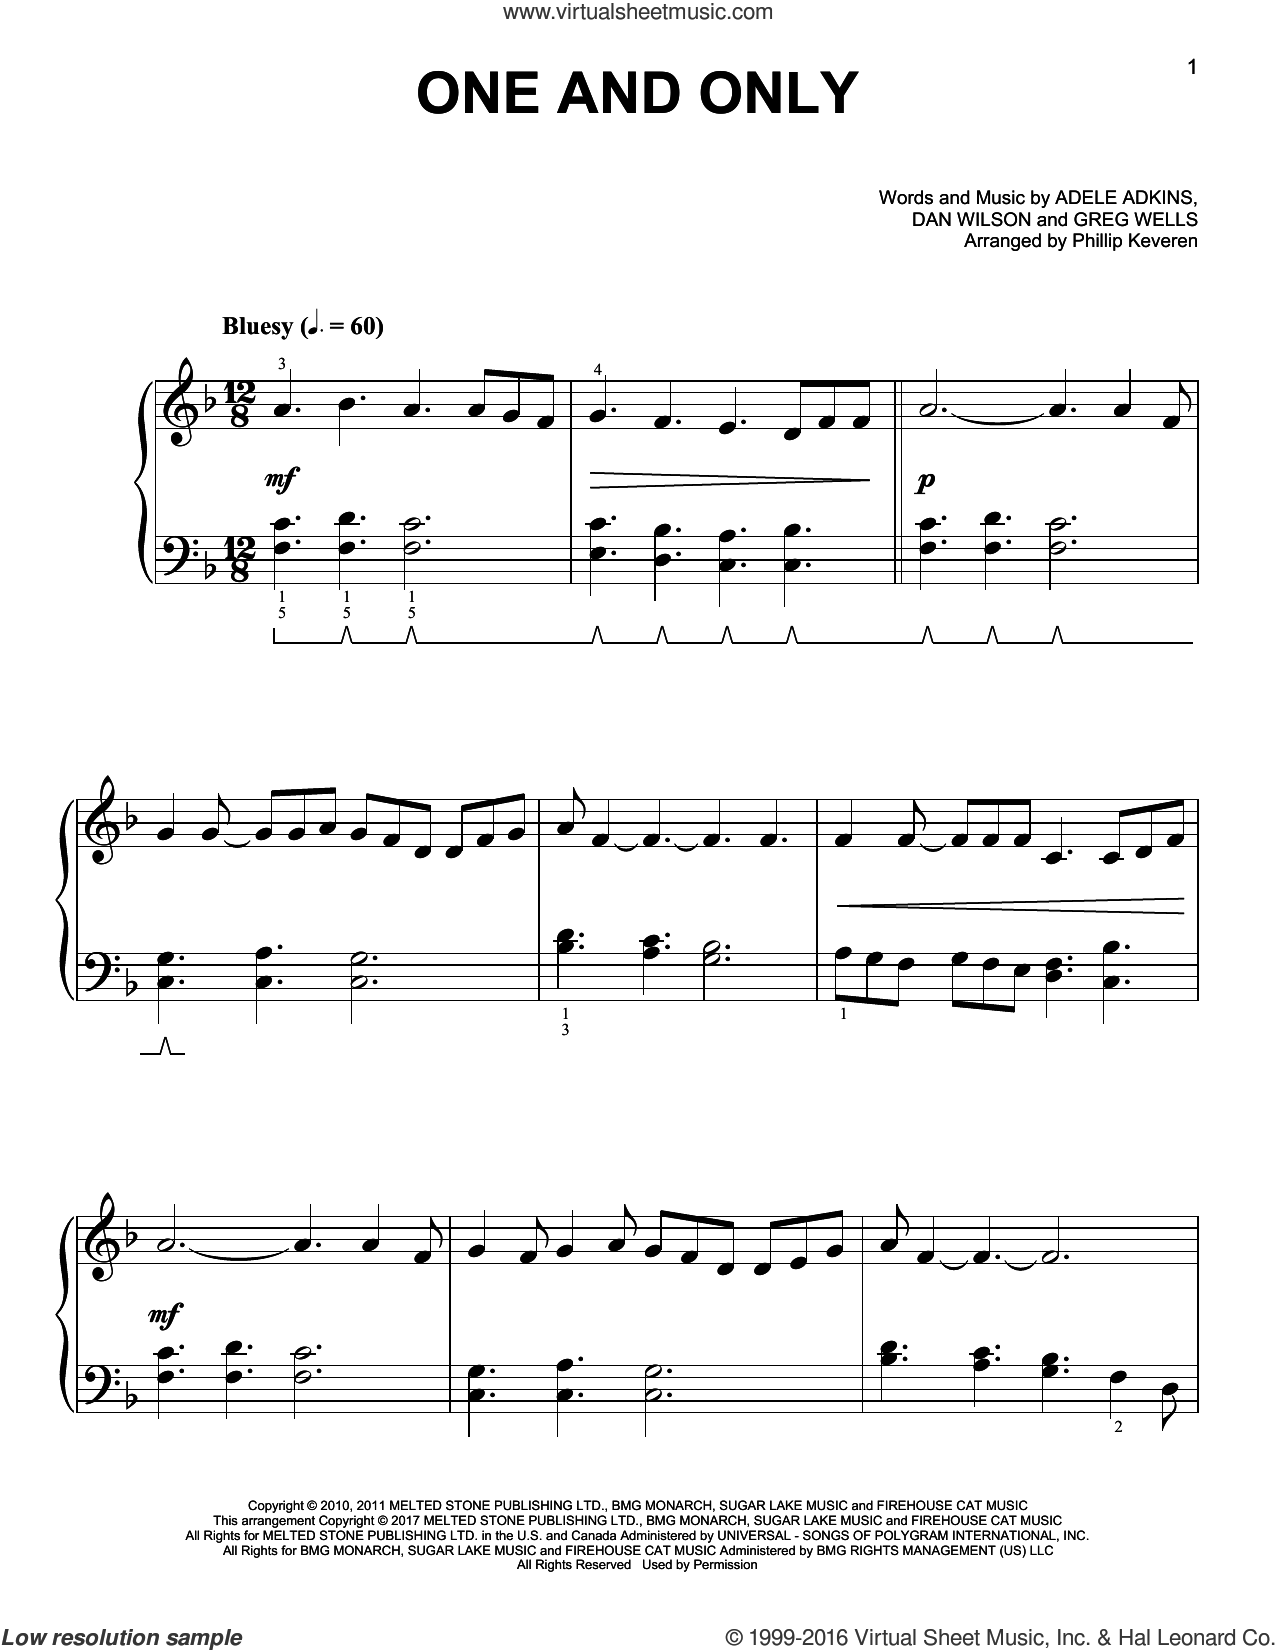 One And Only sheet music for piano solo by Dan Wilson, Phillip Keveren, Adele, Adele Adkins and Greg Wells, wedding score, easy skill level